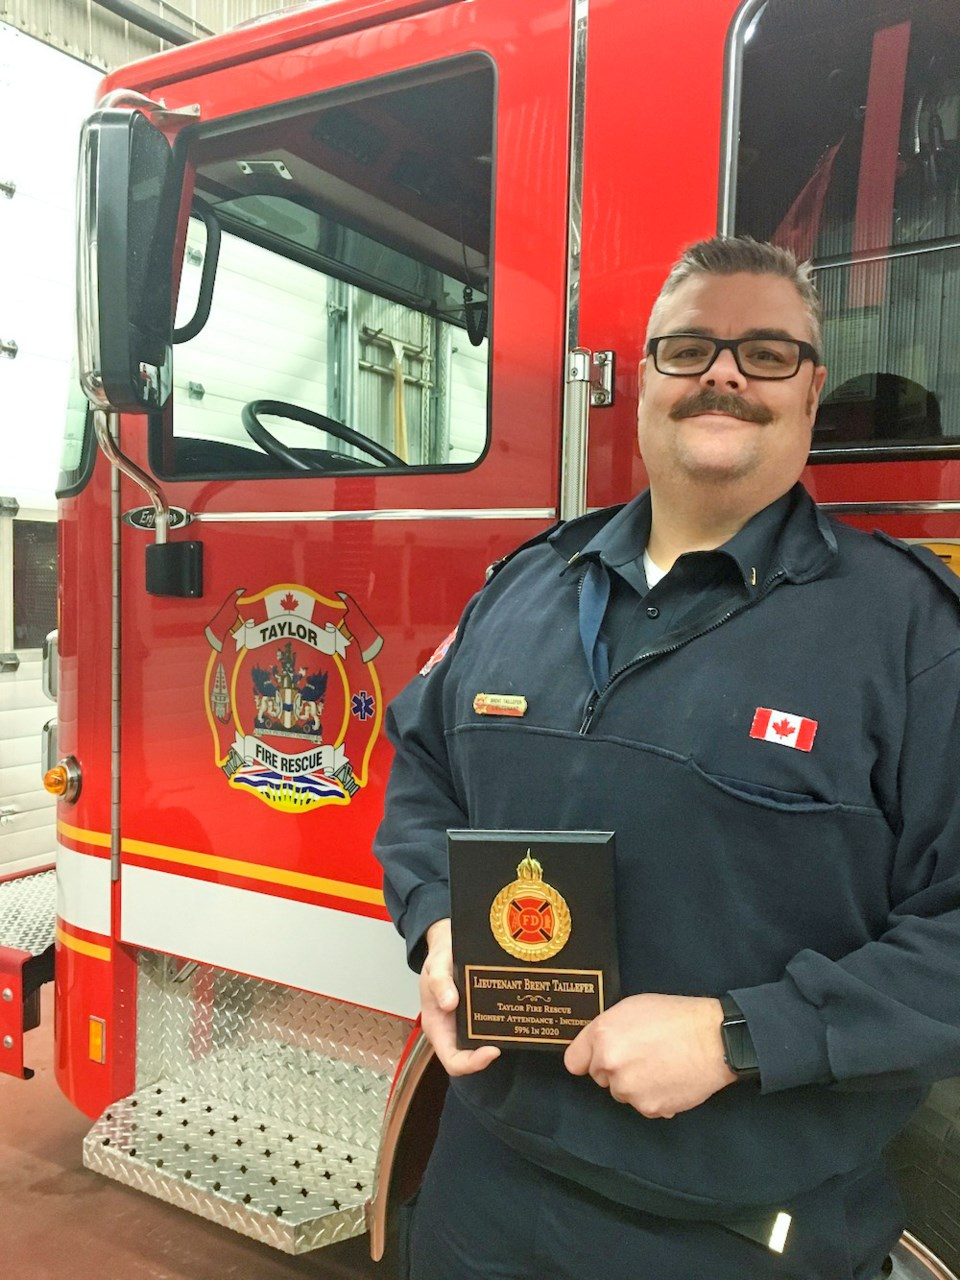 Brent-Taillefer-Taylor-Fire-Rescue